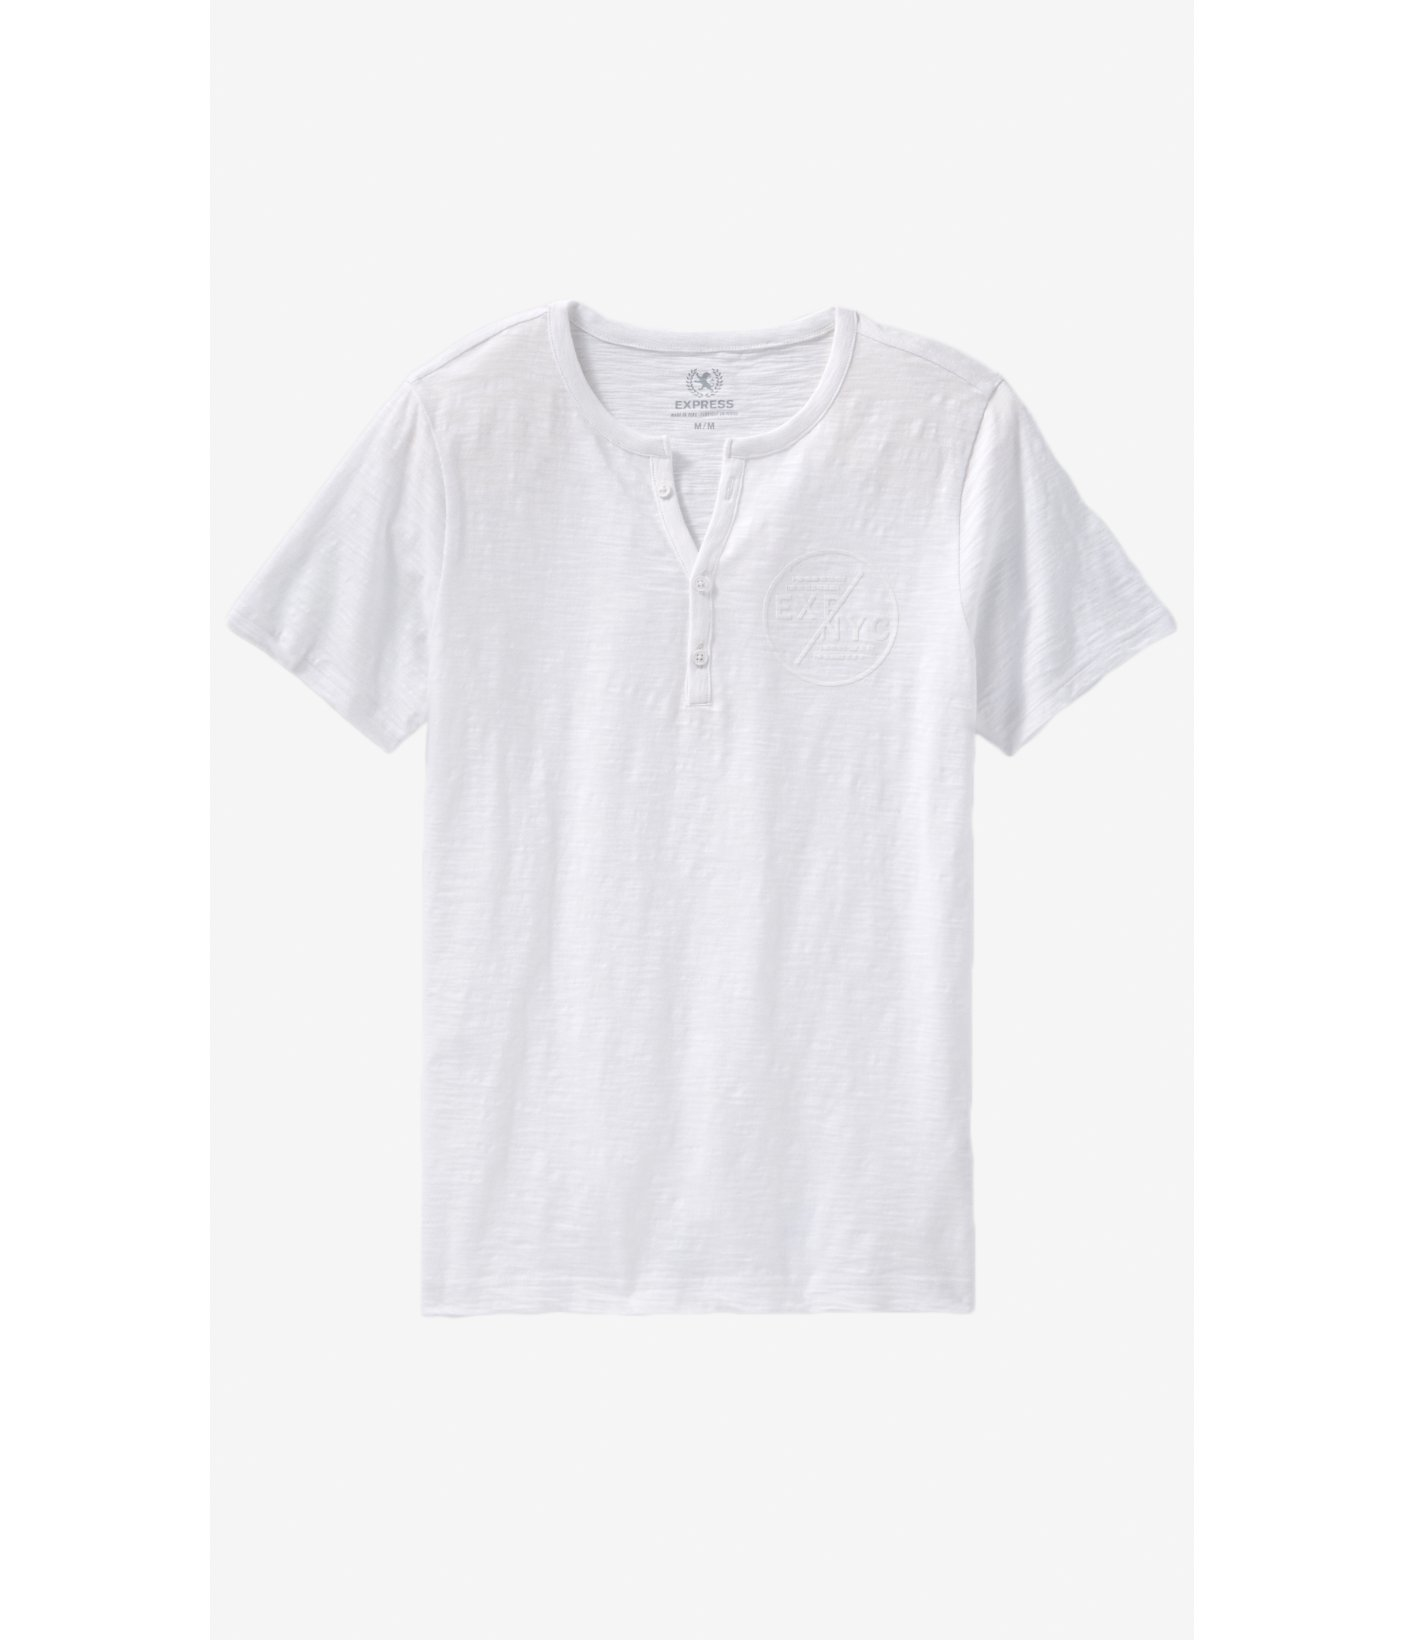 White t shirt express - Gallery